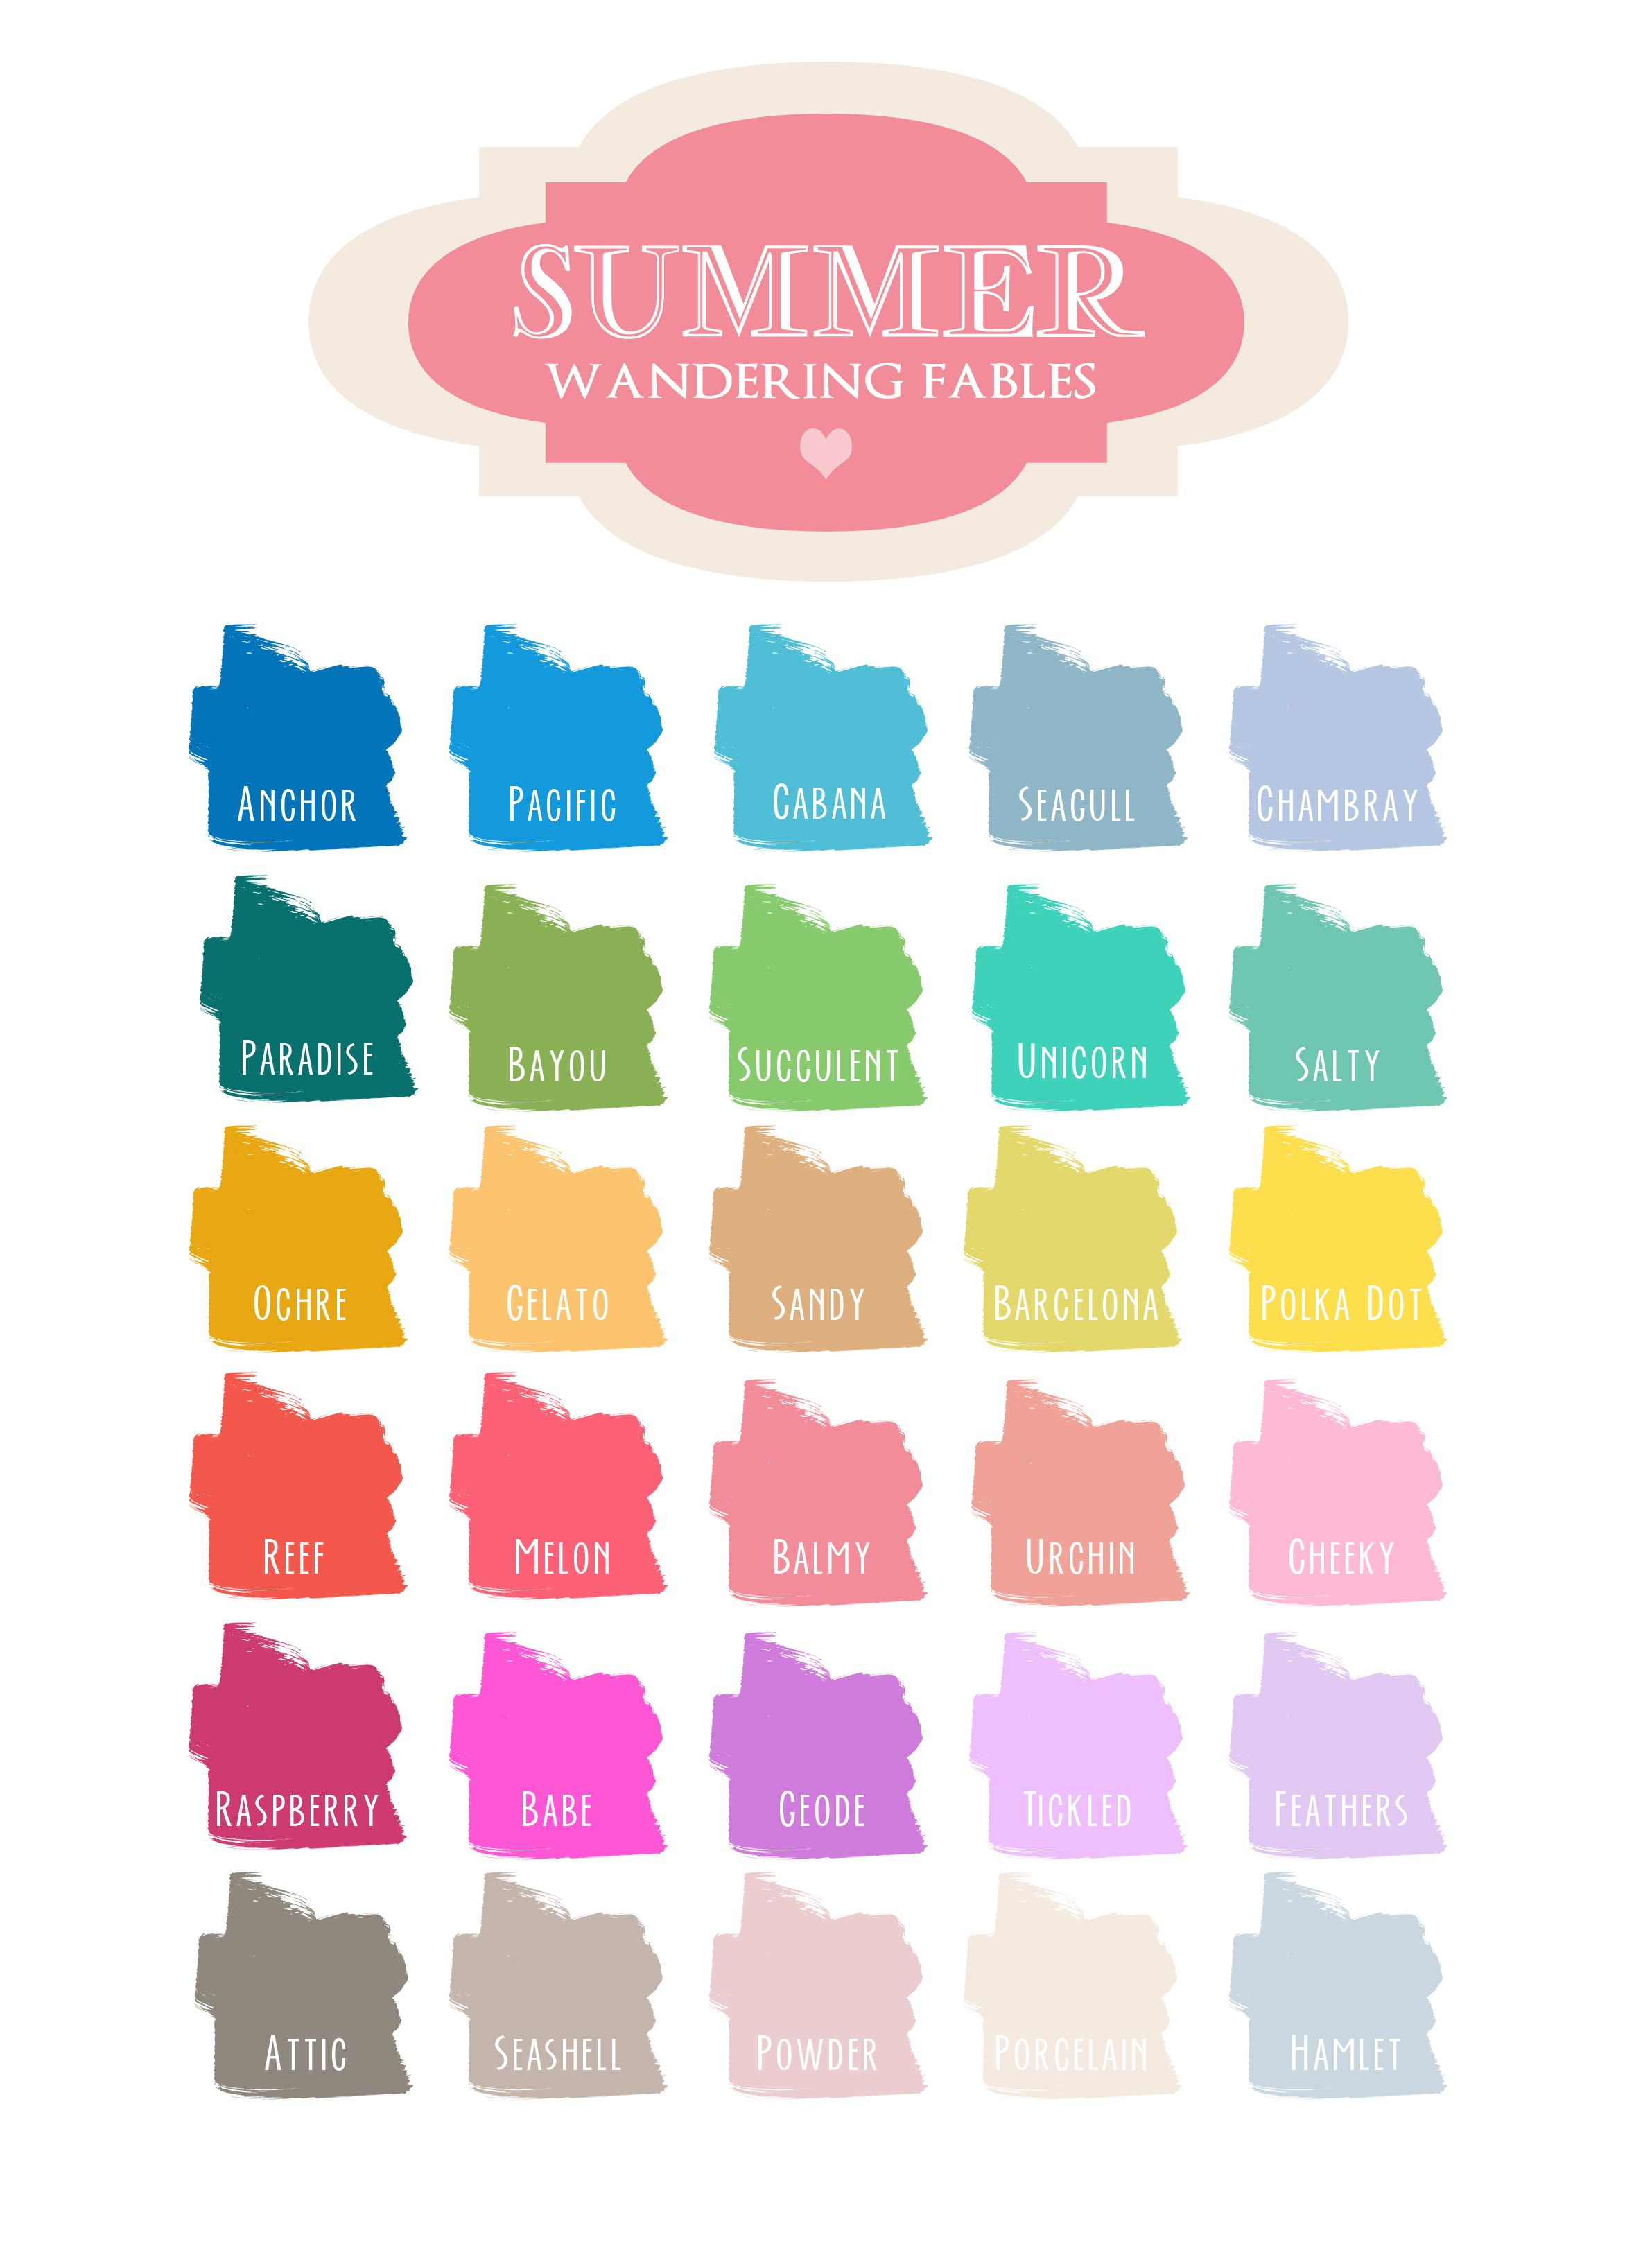 2014 spring/summer wedding color trends | 2015 wedding trends